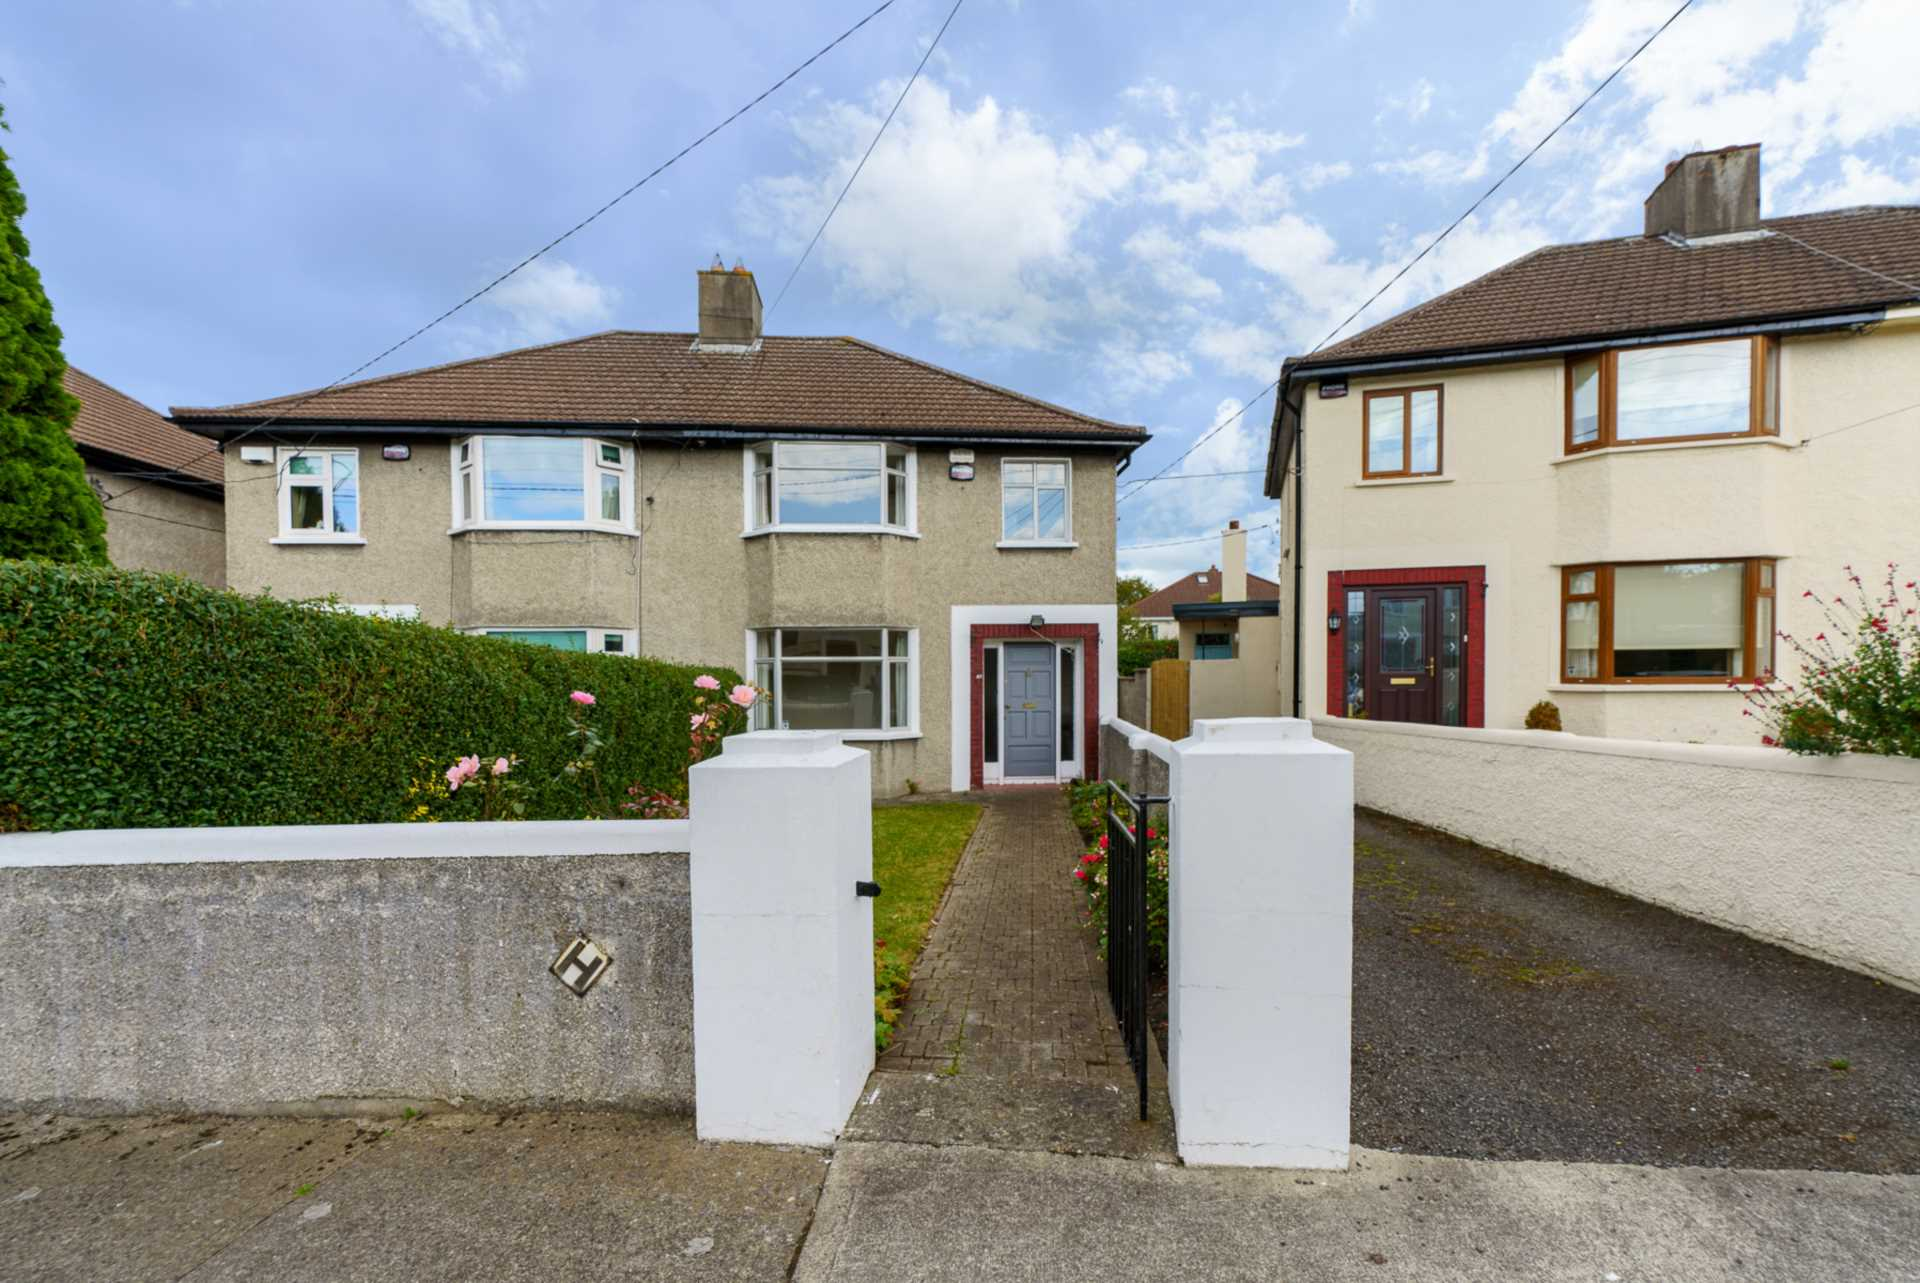 57 Seafield Crescent, Booterstown, Co Dublin, Image 21